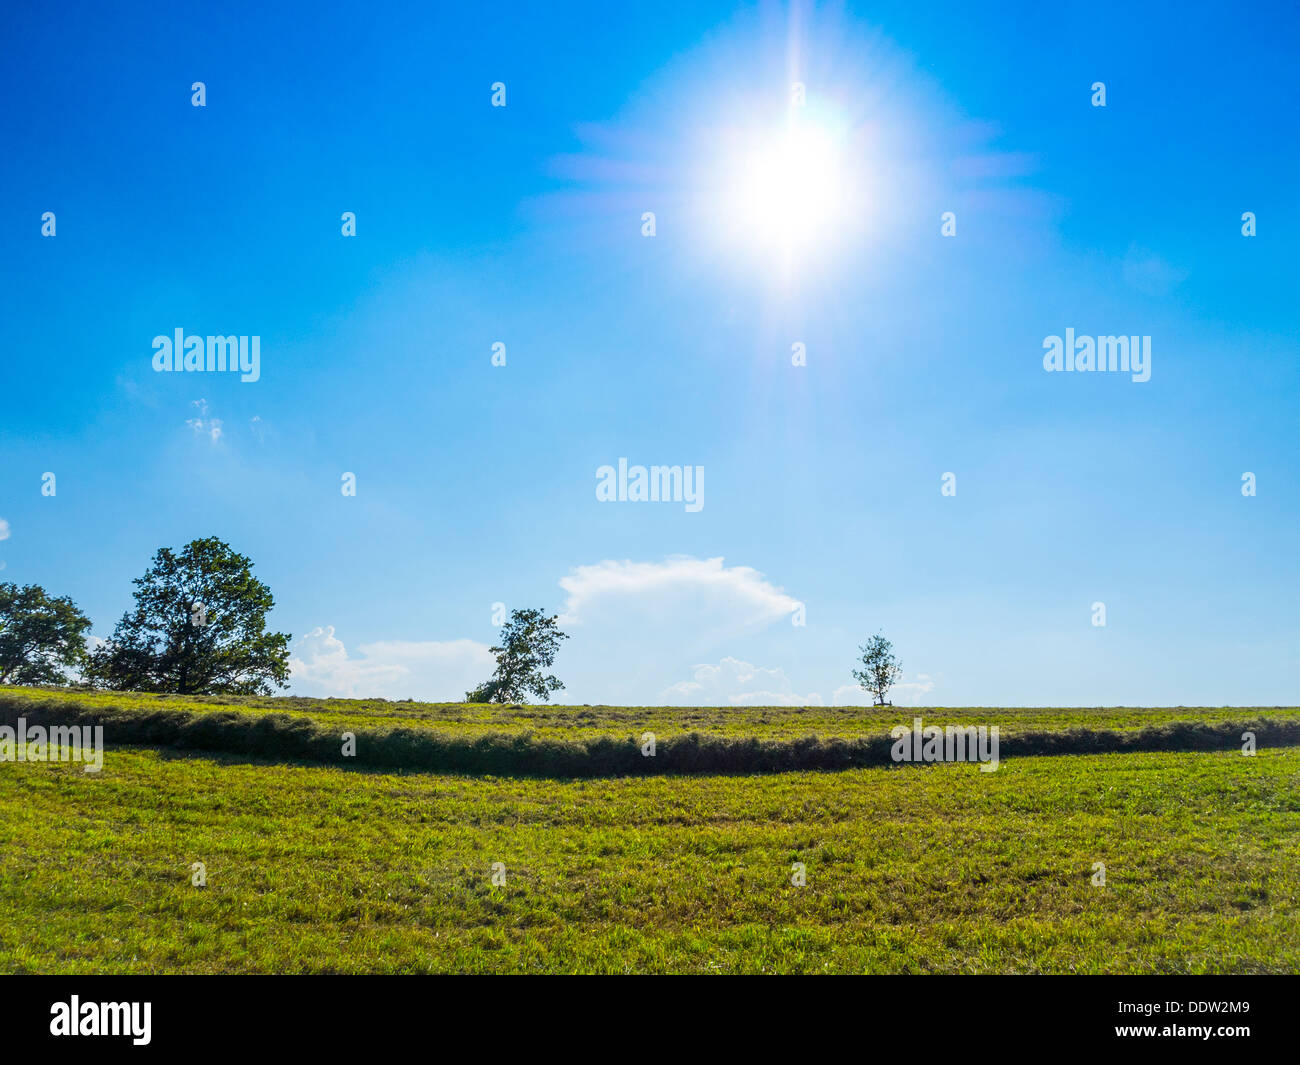 Green grass an blue sky with sun and clouds for background - Stock Image